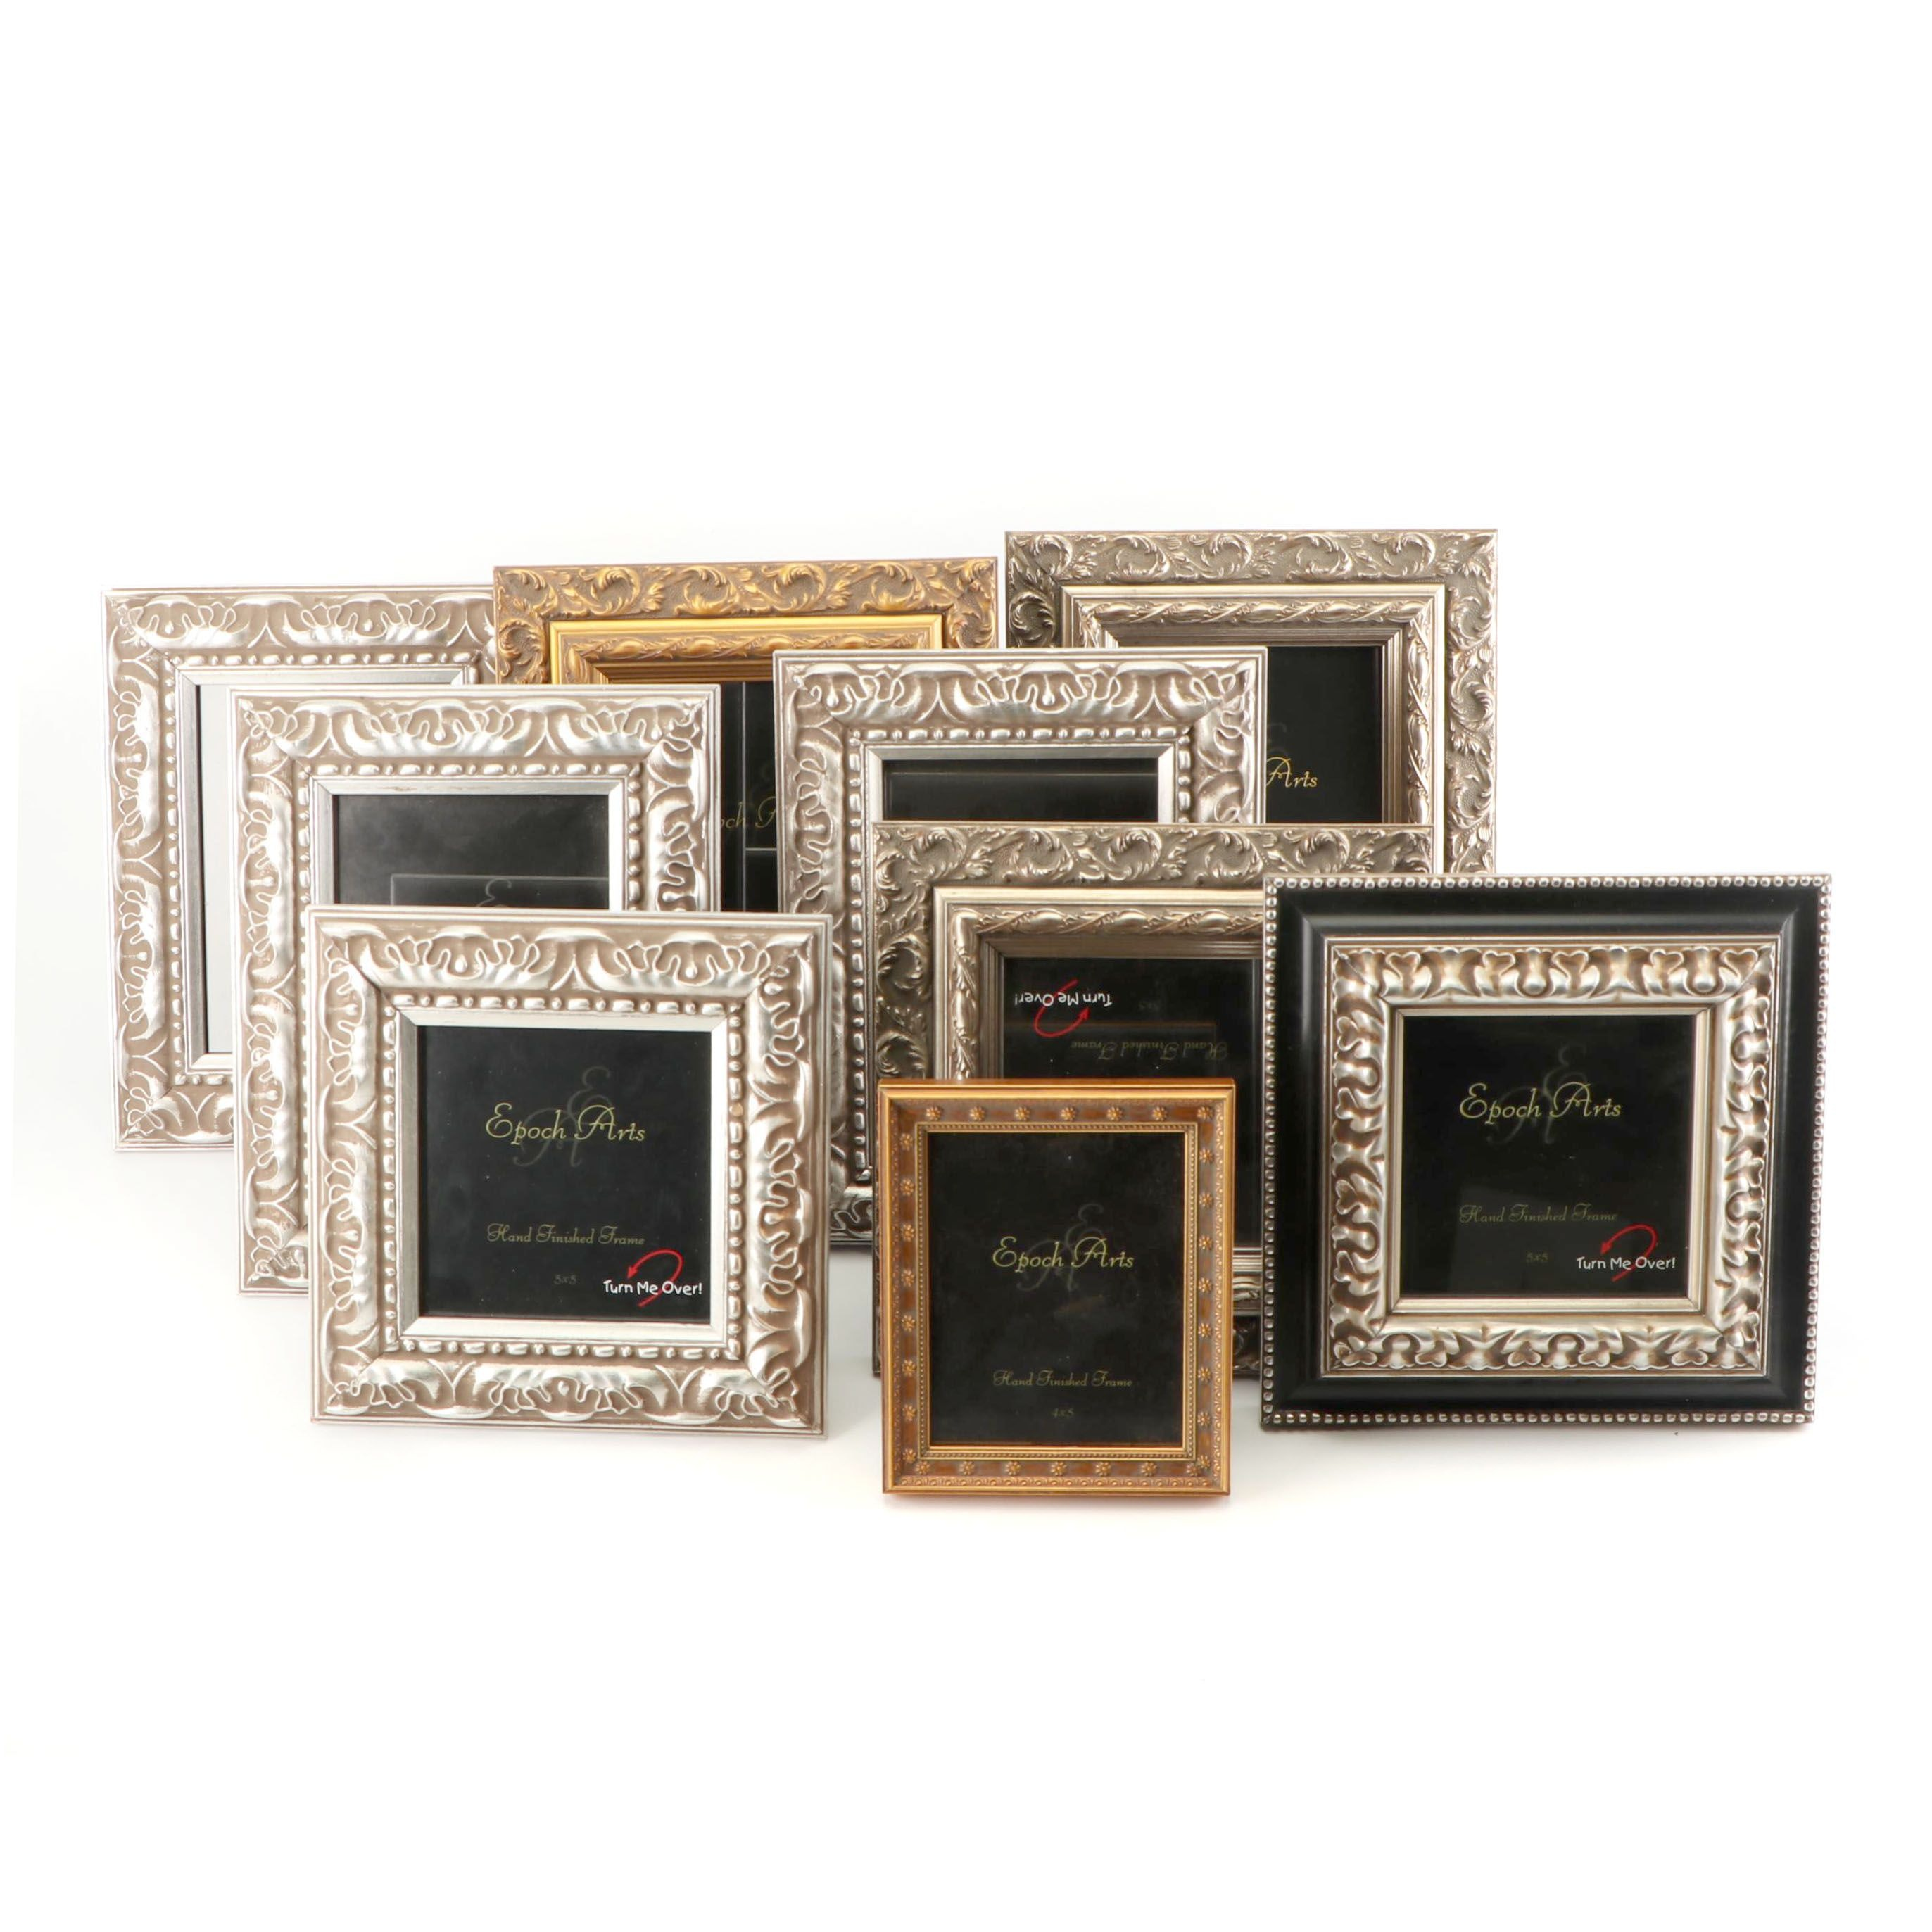 Epoch Arts Hand Finished Table Top Picture Frames